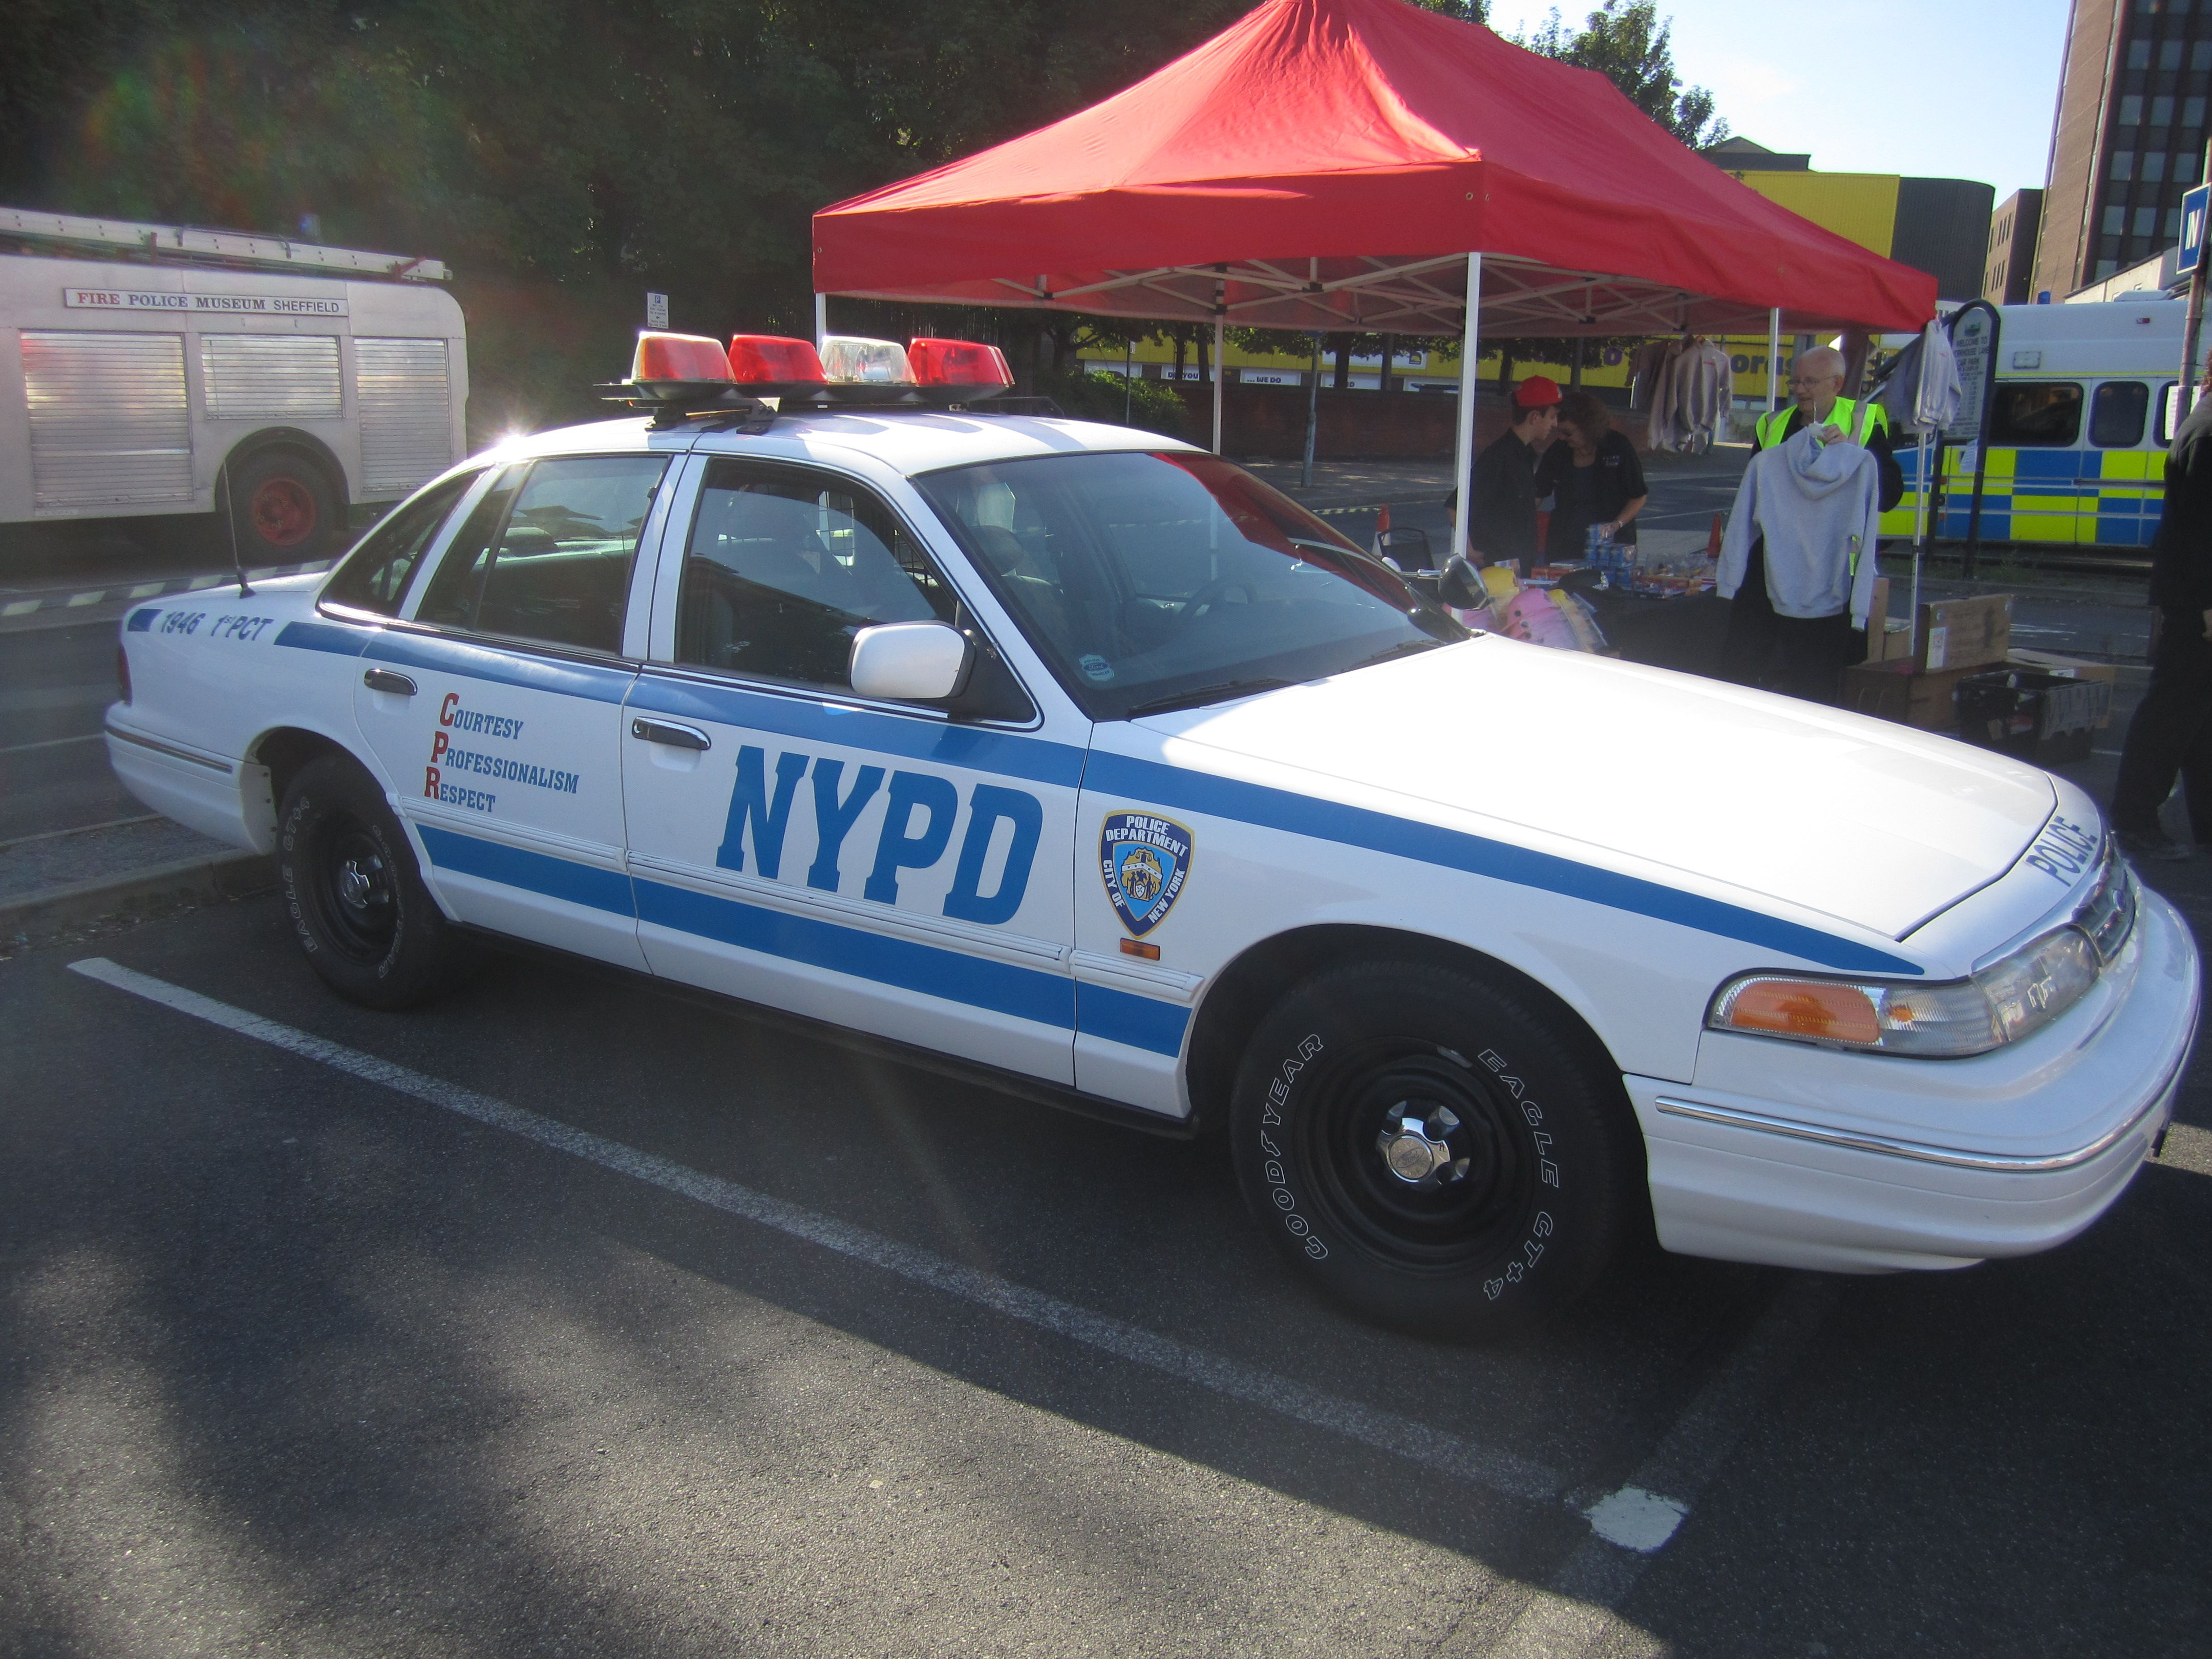 Nypd New York Police Department Crown Victoria Police Car